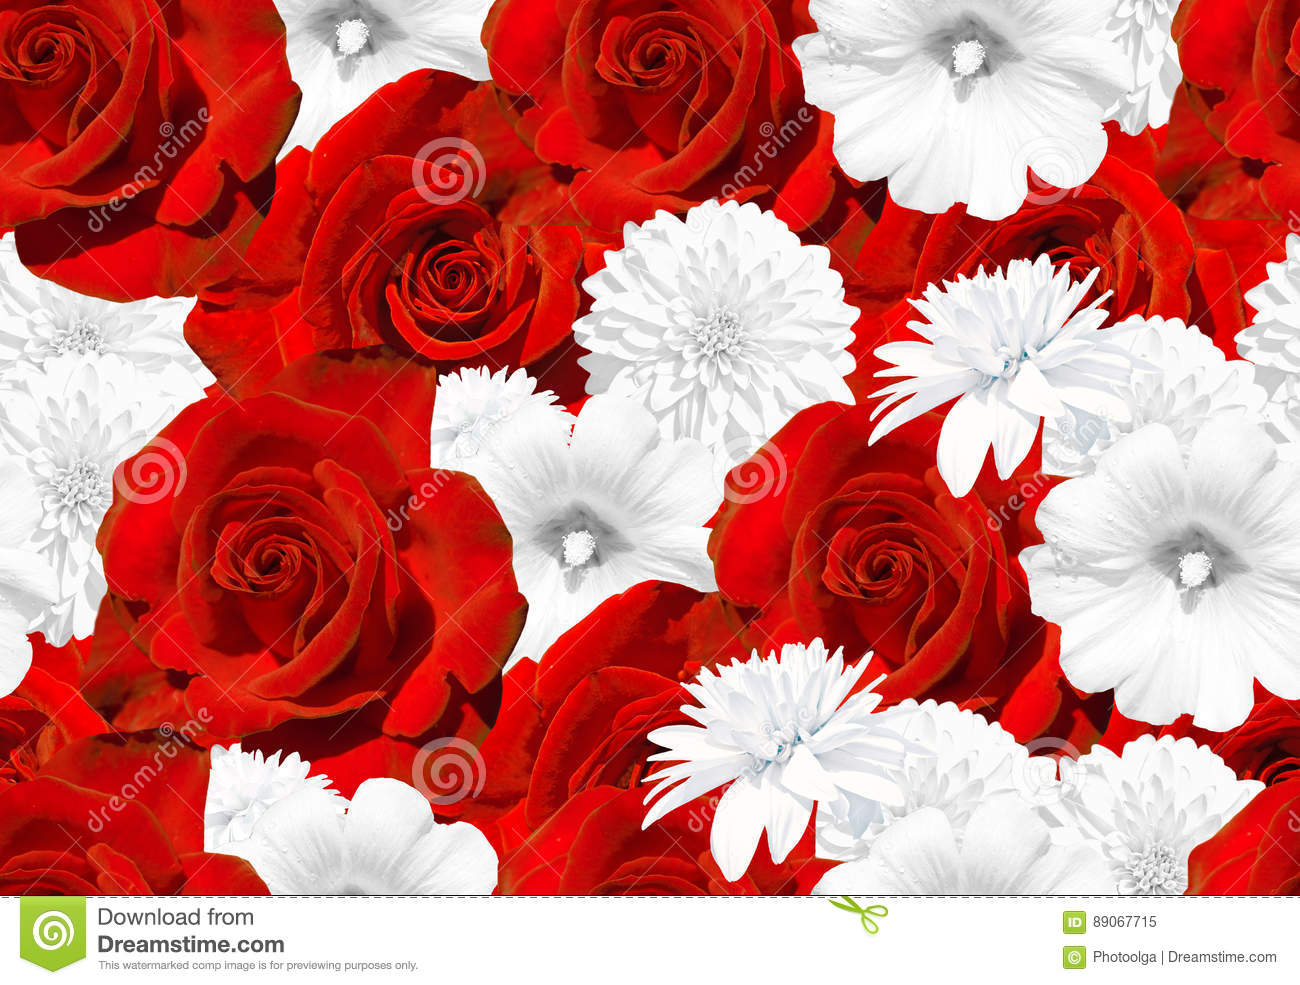 Seamless Flower Texture Red Roses And White Flowers Rose Mallow